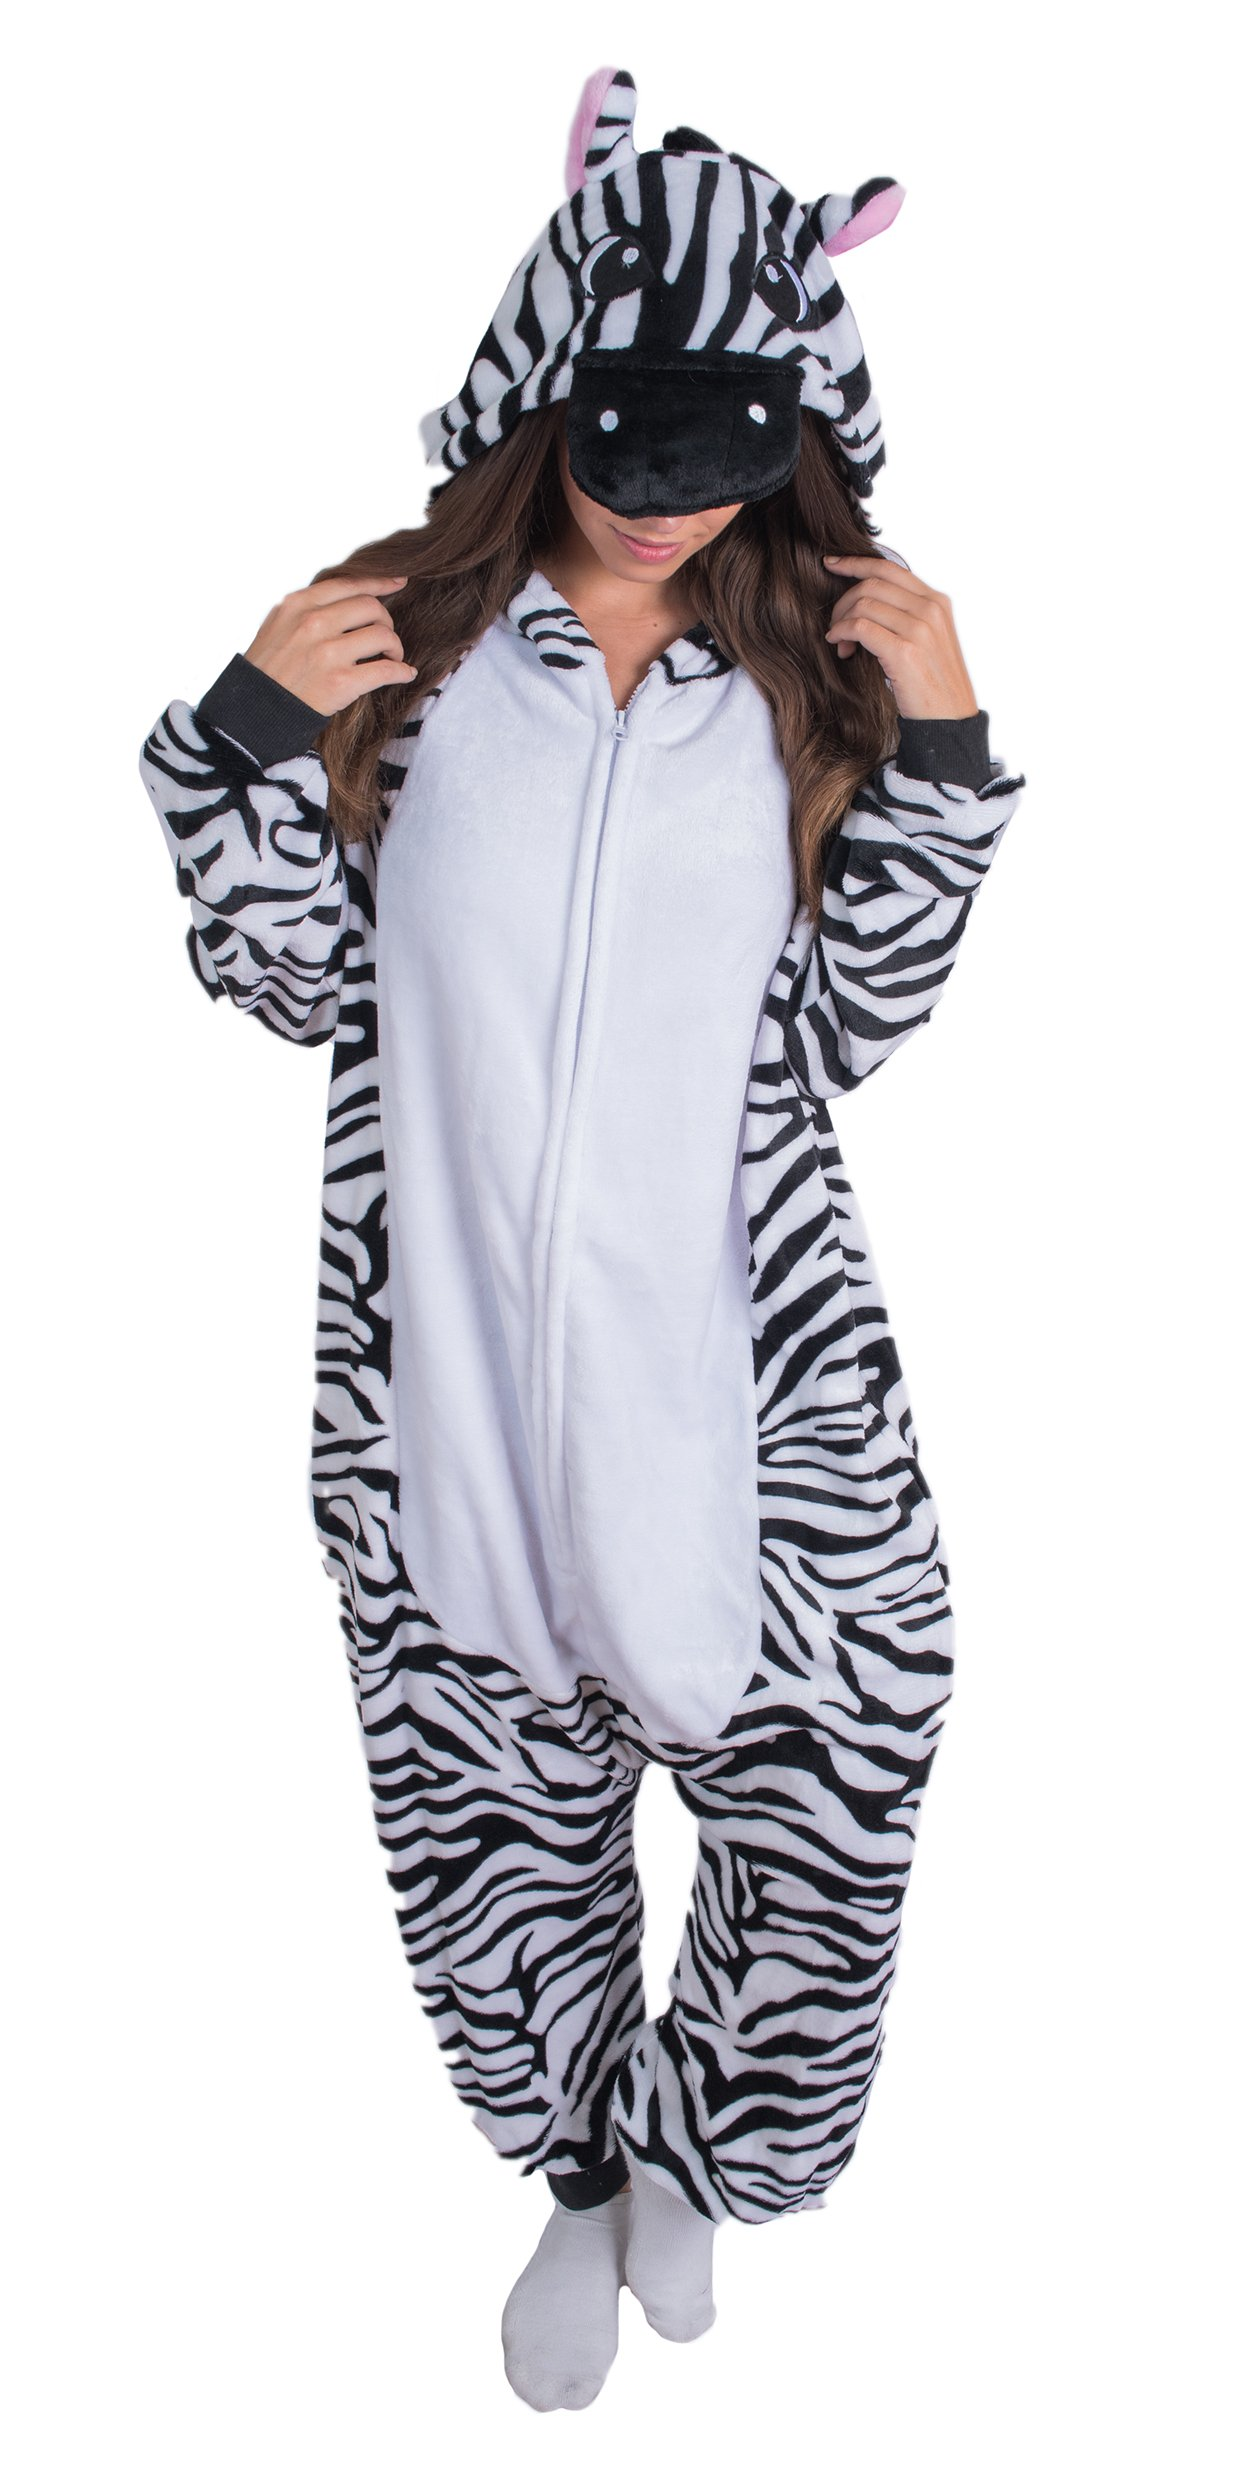 Adult Onesie Zebra Animal Pajamas Comfortable Costume With Zipper and Pockets (X-Large)